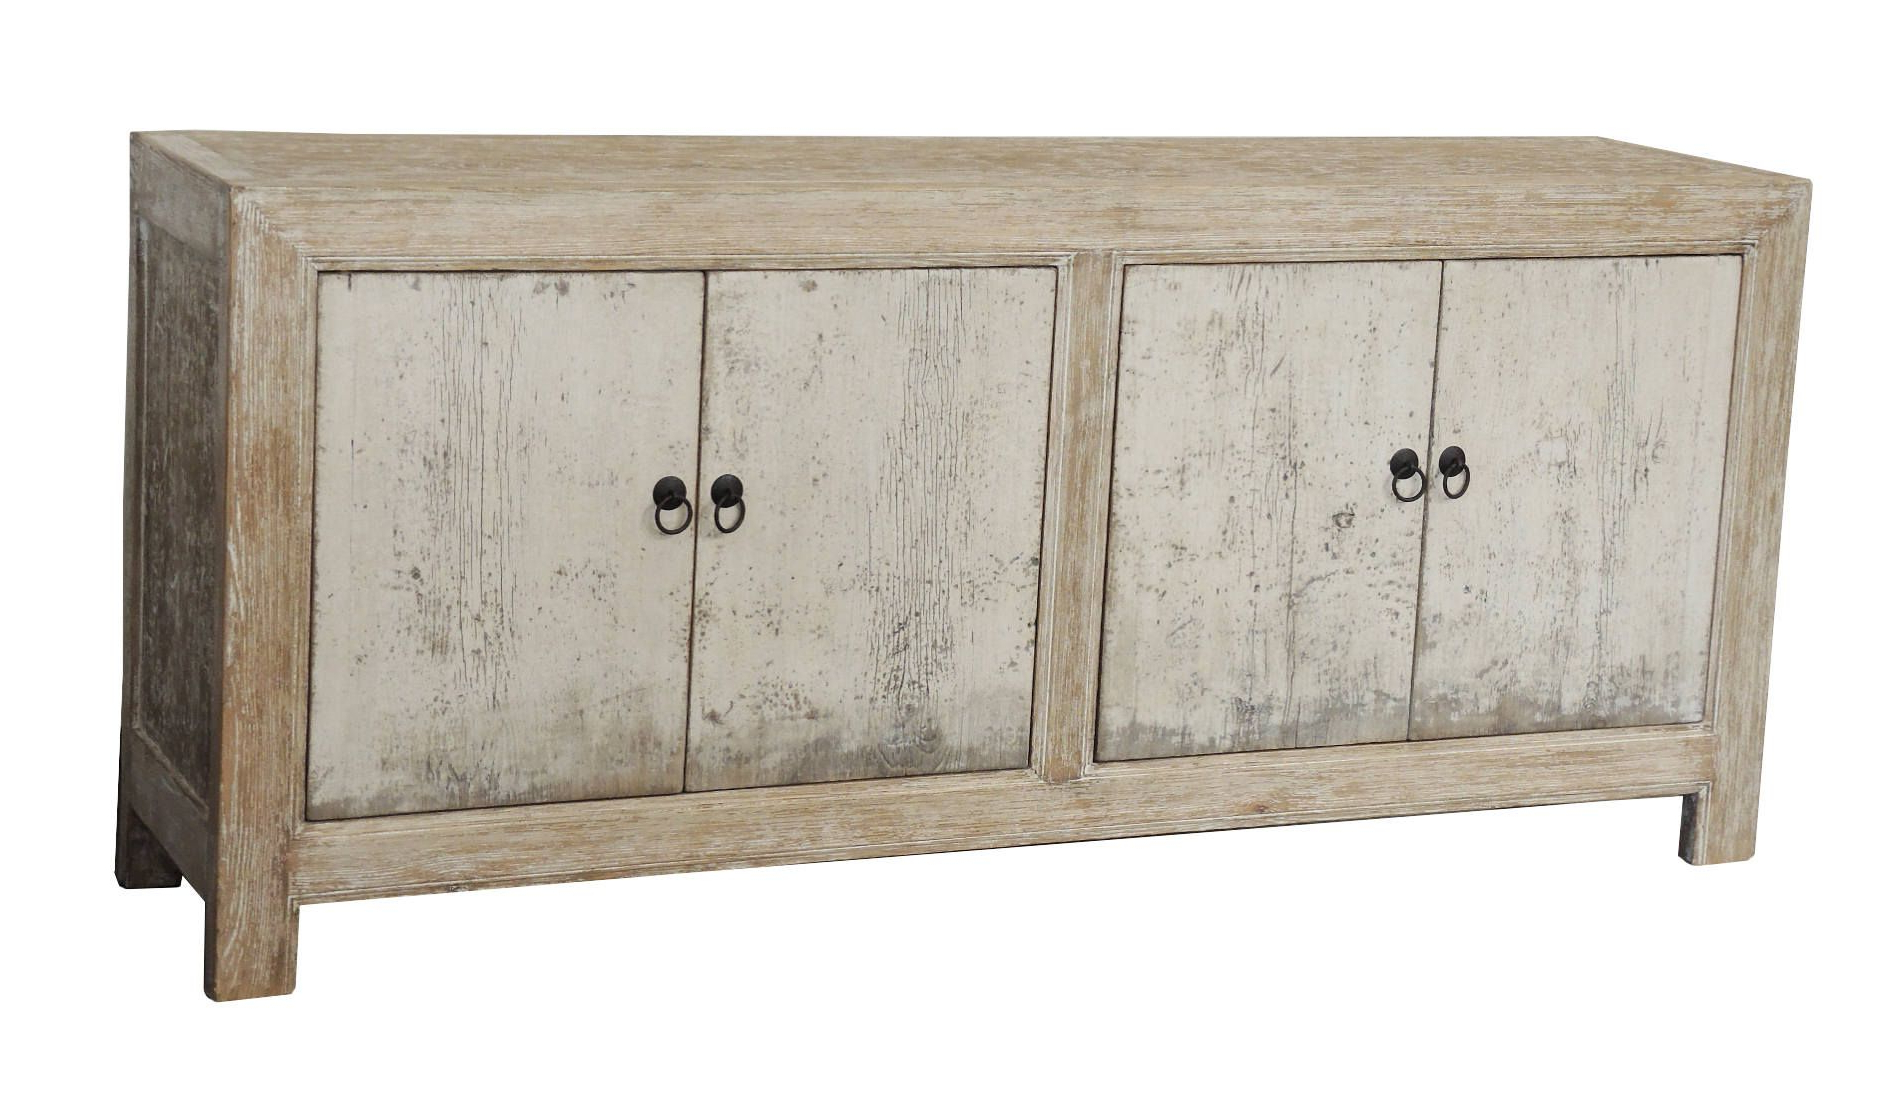 White Wash Distressed 4 Door Sideboard From Terra Nova Designs With Regard To Well Known White Wash 4 Door Sideboards (View 6 of 20)